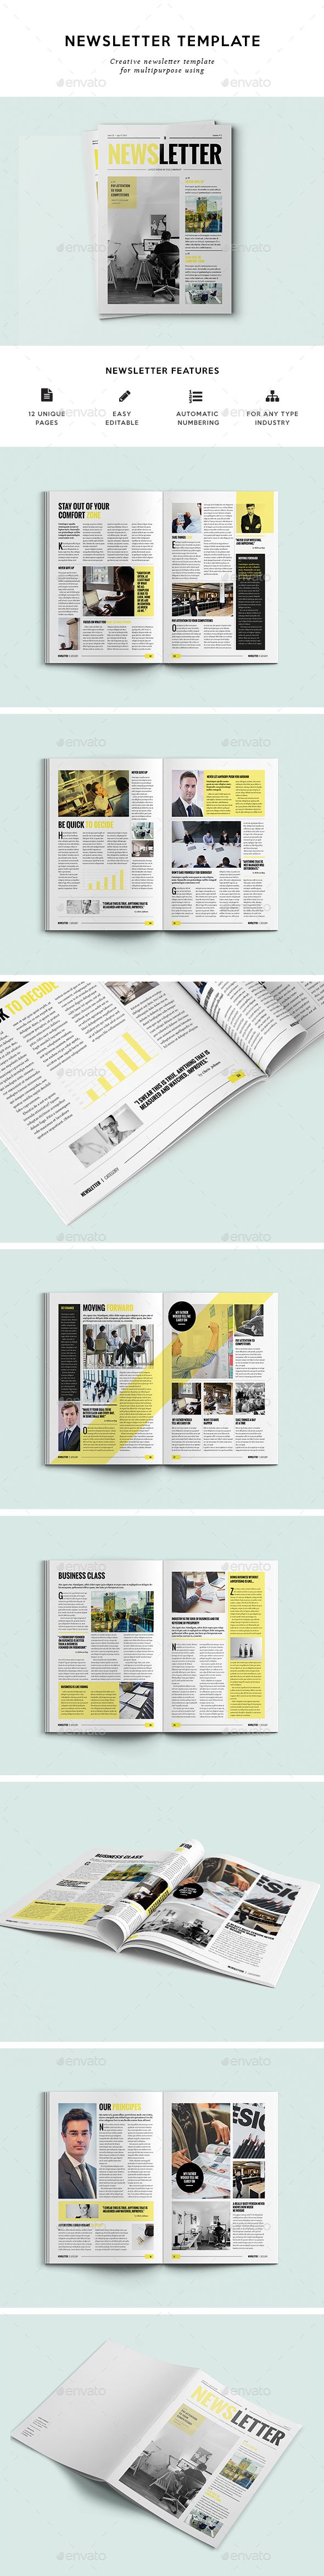 Famous 10 Half Hexagon Template Thick 10 Minute Resume Regular 1099 Misc Form Template 1099 Template Word Old 1st Birthday Invite Templates Green1st Job Resume Objective 12 Pages Corporate Newsletter | Print..., Newsletter Templates And 12